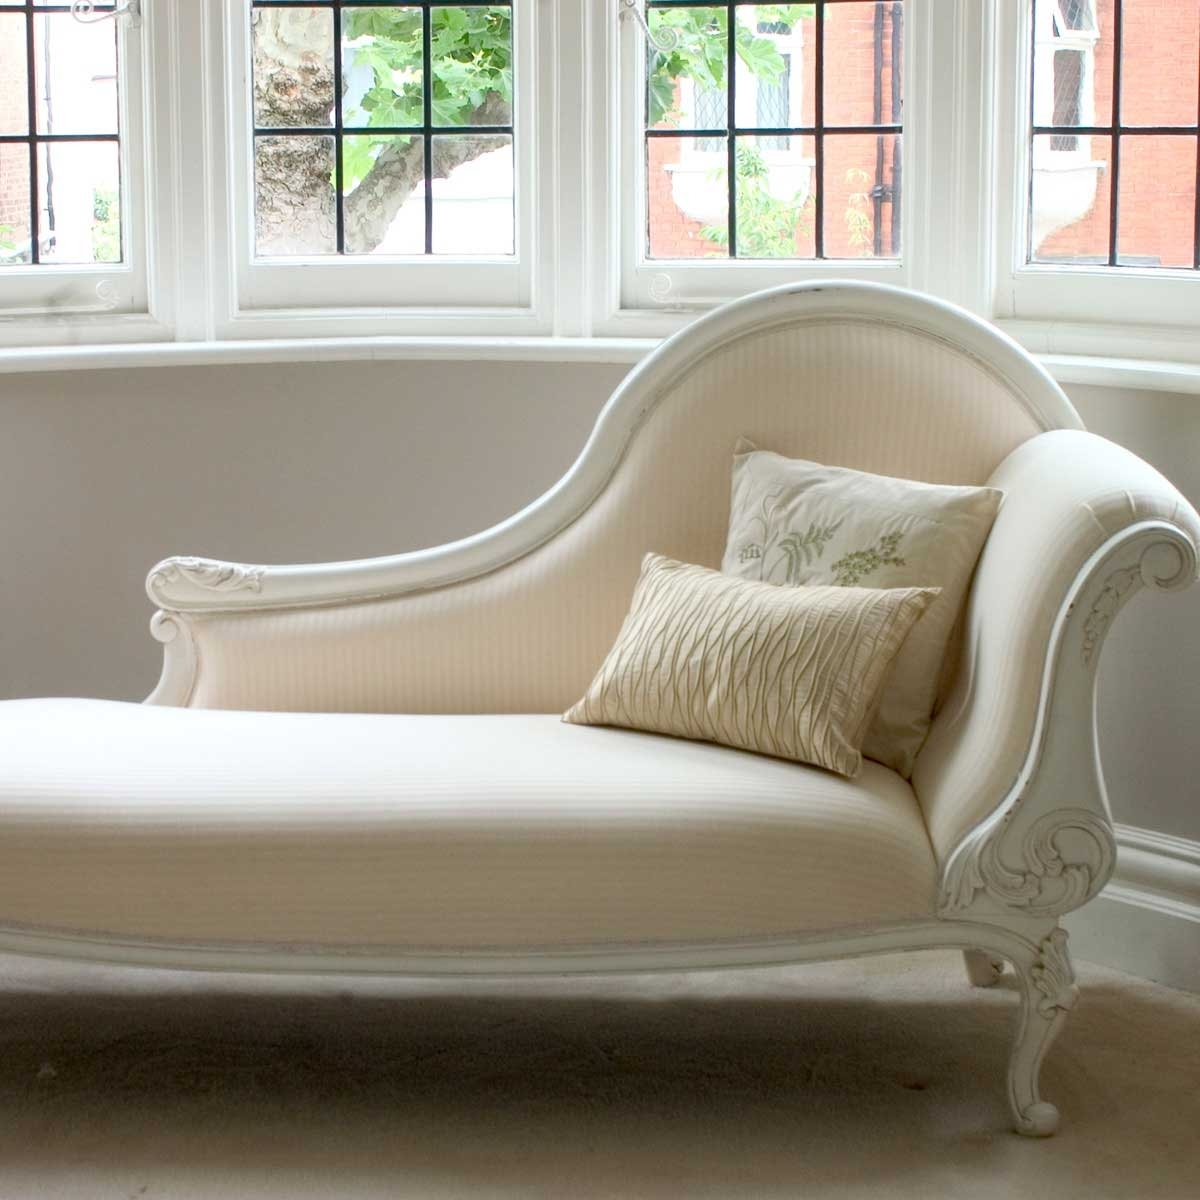 Famous Sofa : Cool Chaise Lounges For Bedrooms Bedroom Lounge Slipcovers For Cheap Chaise Lounge Chairs (View 8 of 15)